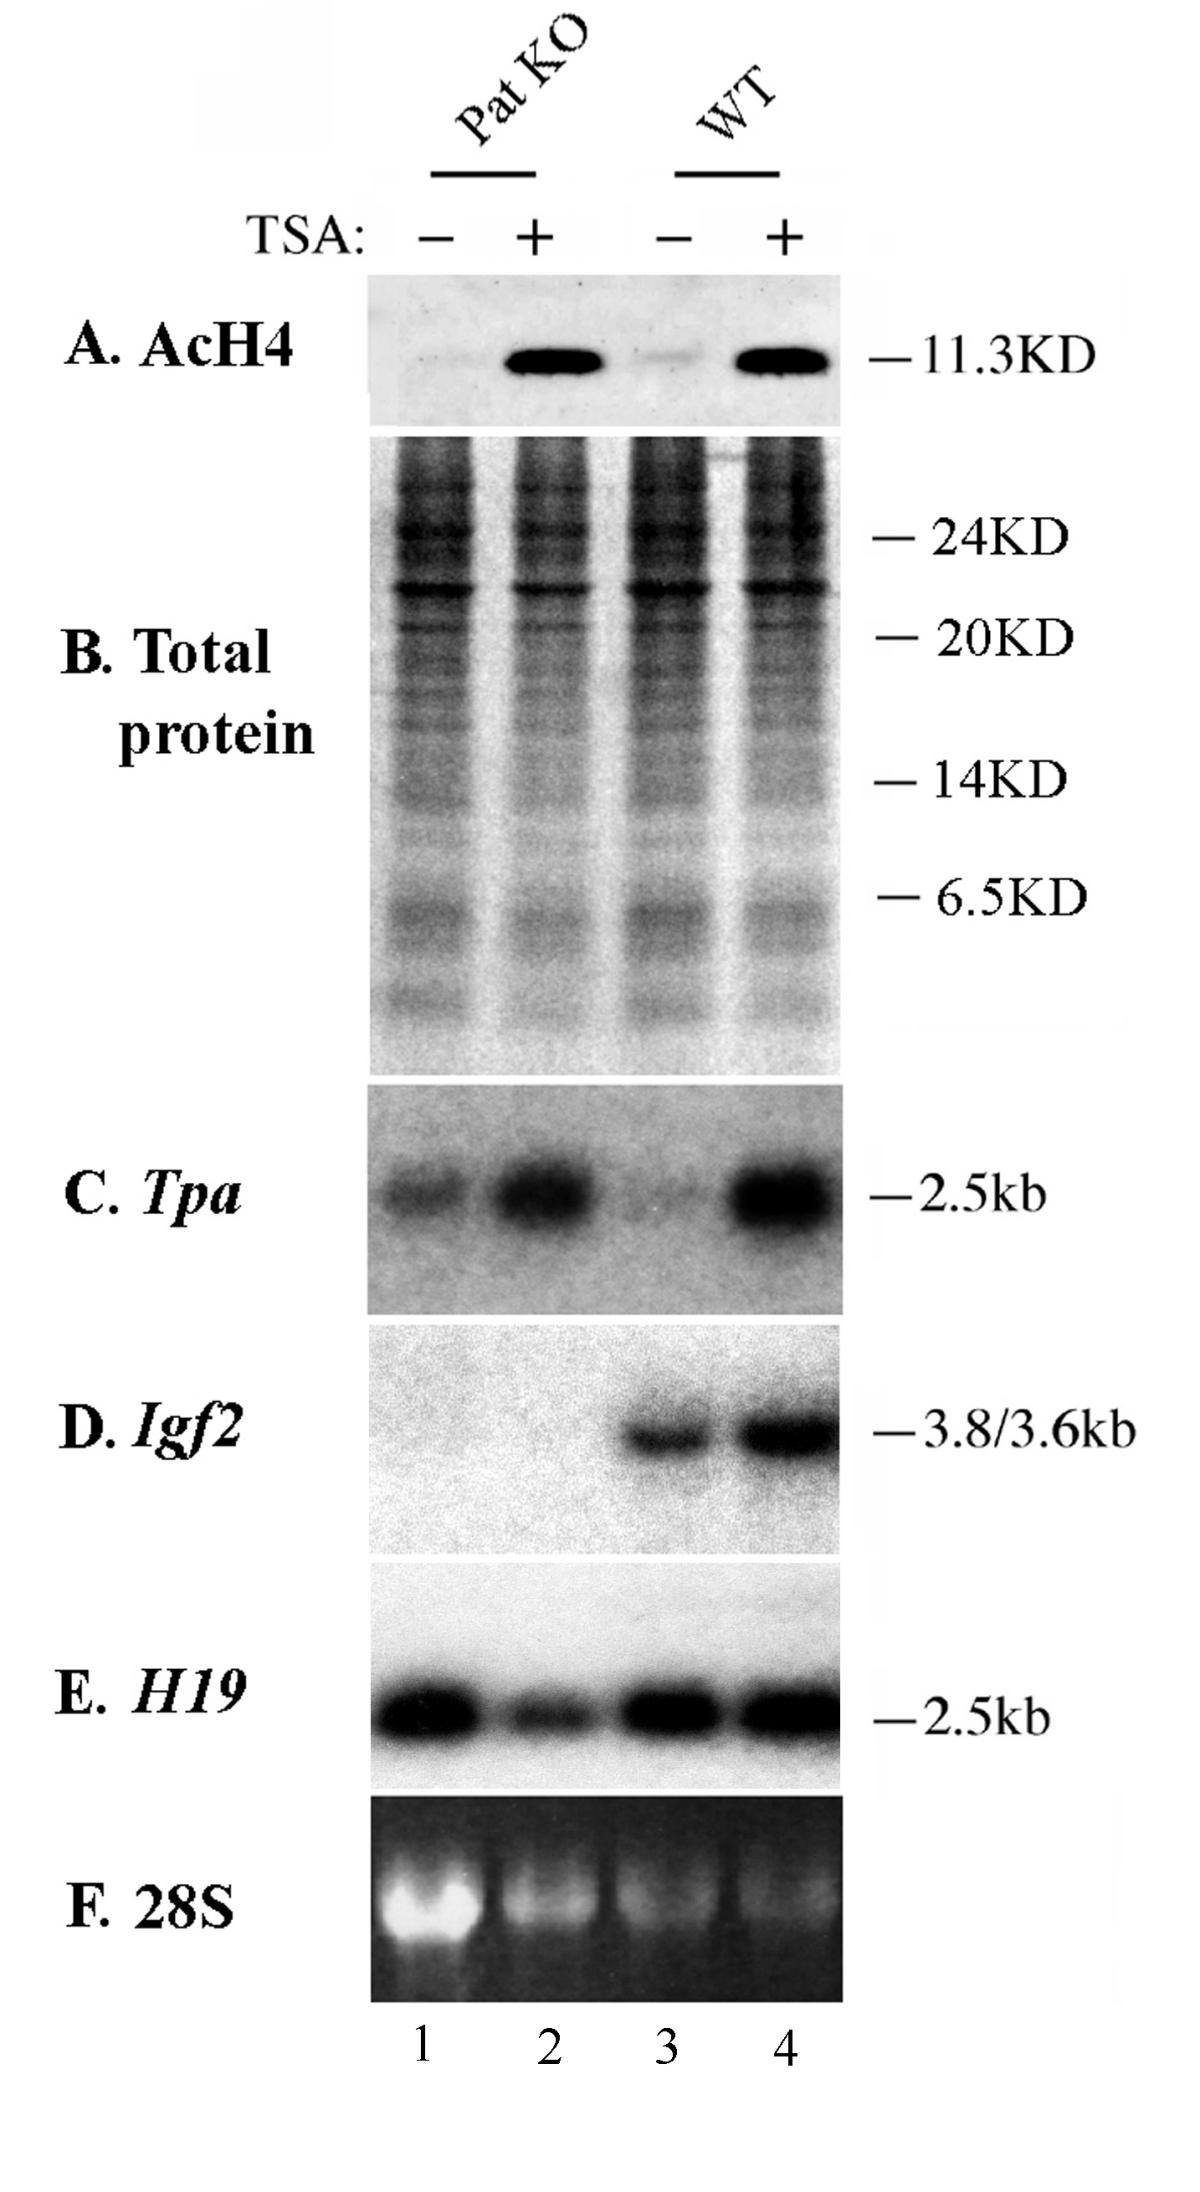 http://static-content.springer.com/image/art%3A10.1186%2F1476-4598-1-2/MediaObjects/12943_2002_Article_2_Fig4_HTML.jpg